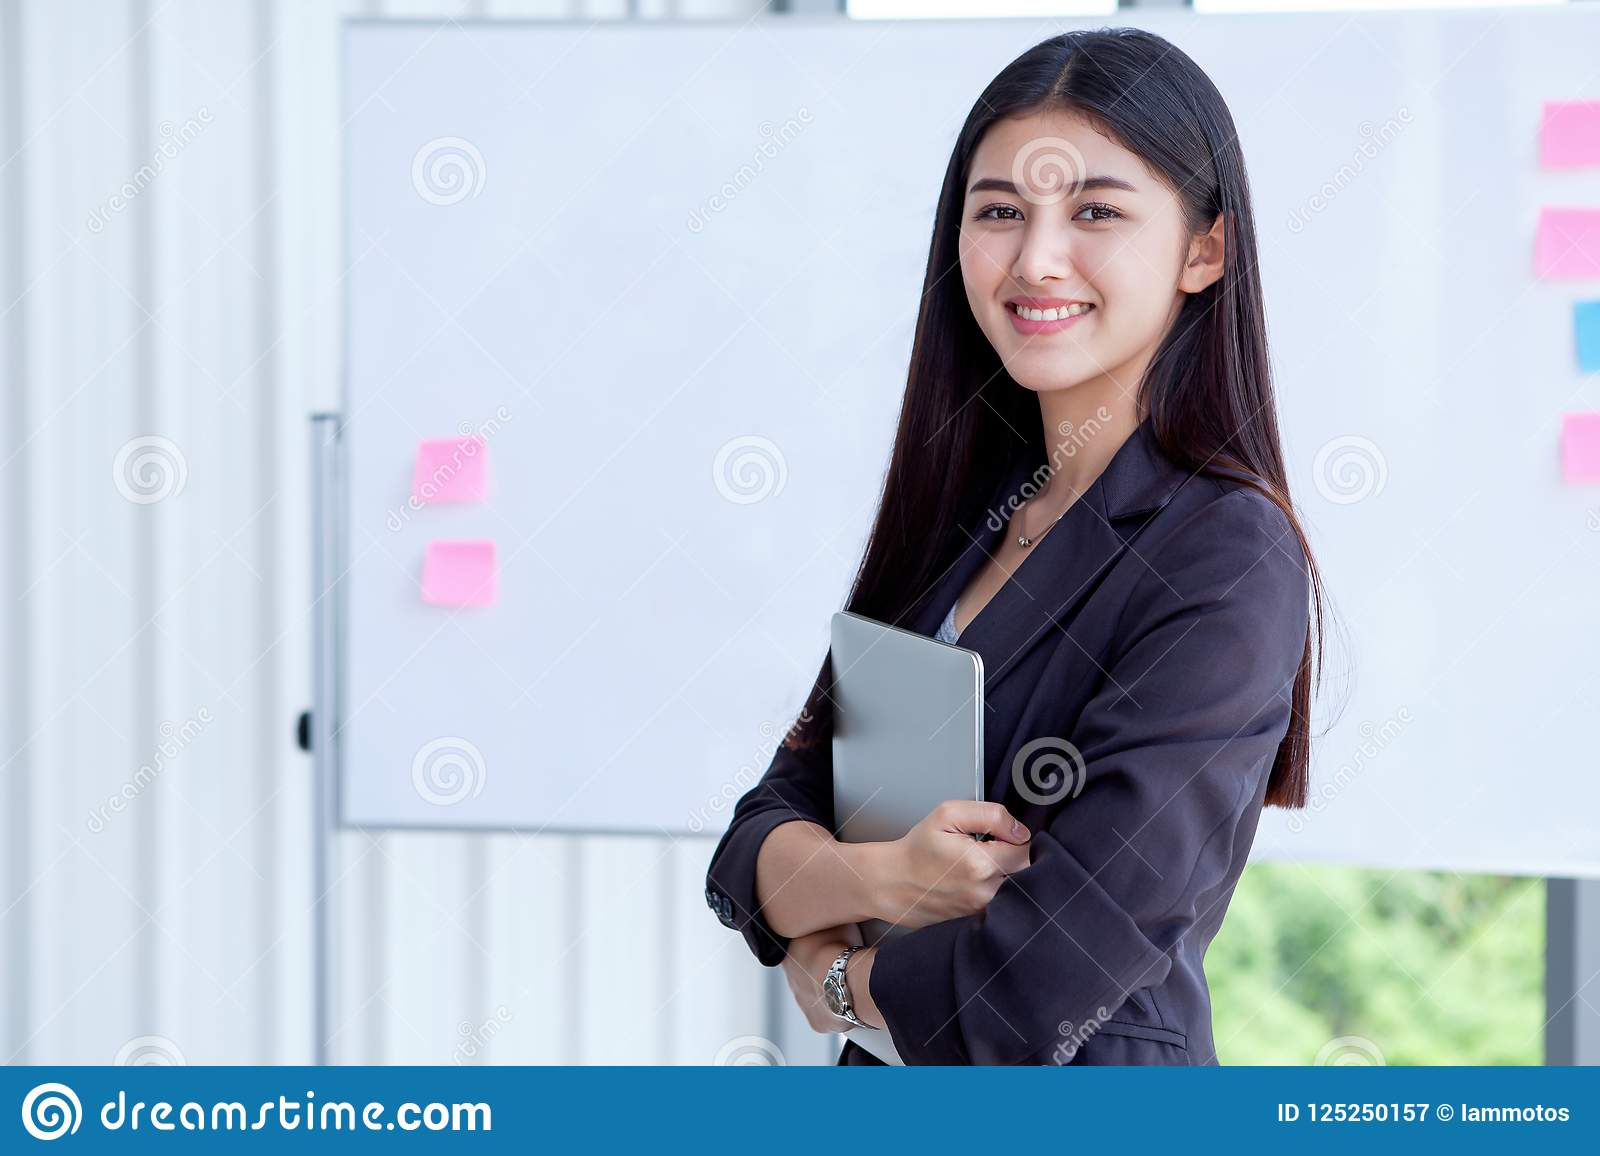 asian young business woman holding Digital tablet Computer isolated on White board background in office.smiling secretary girl wi